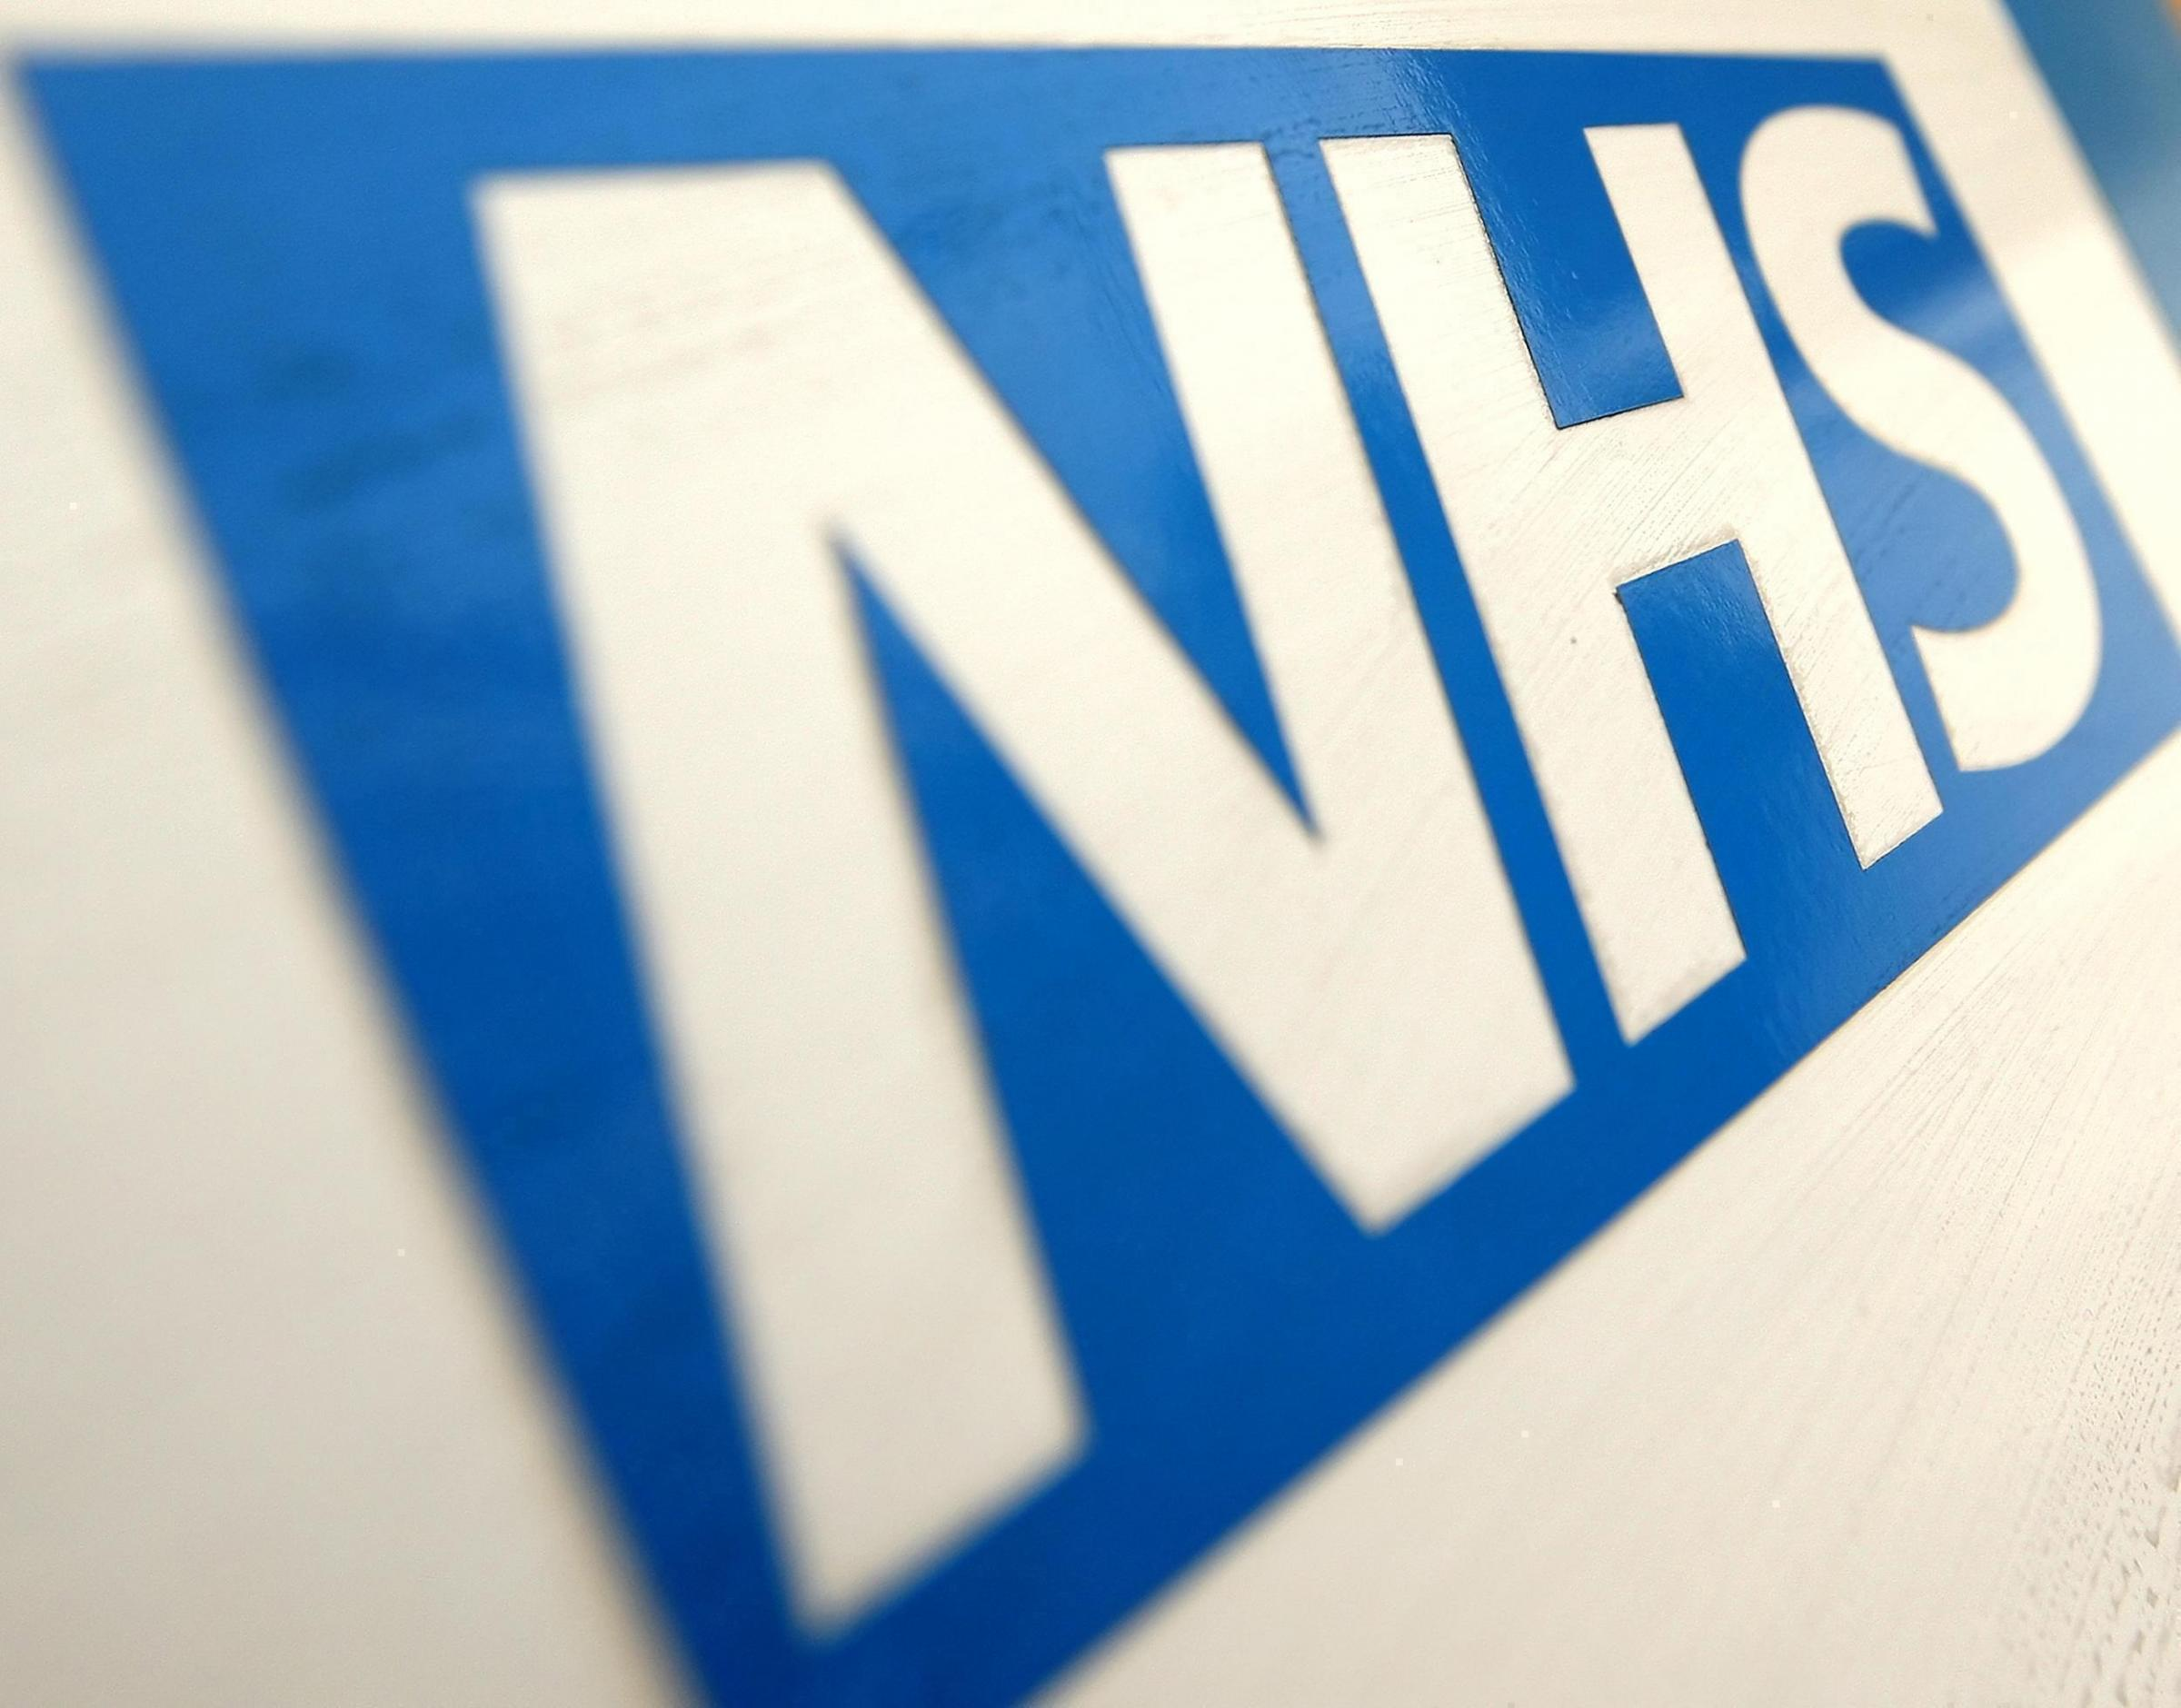 Hospital trust defends 'higher than expected' death rates